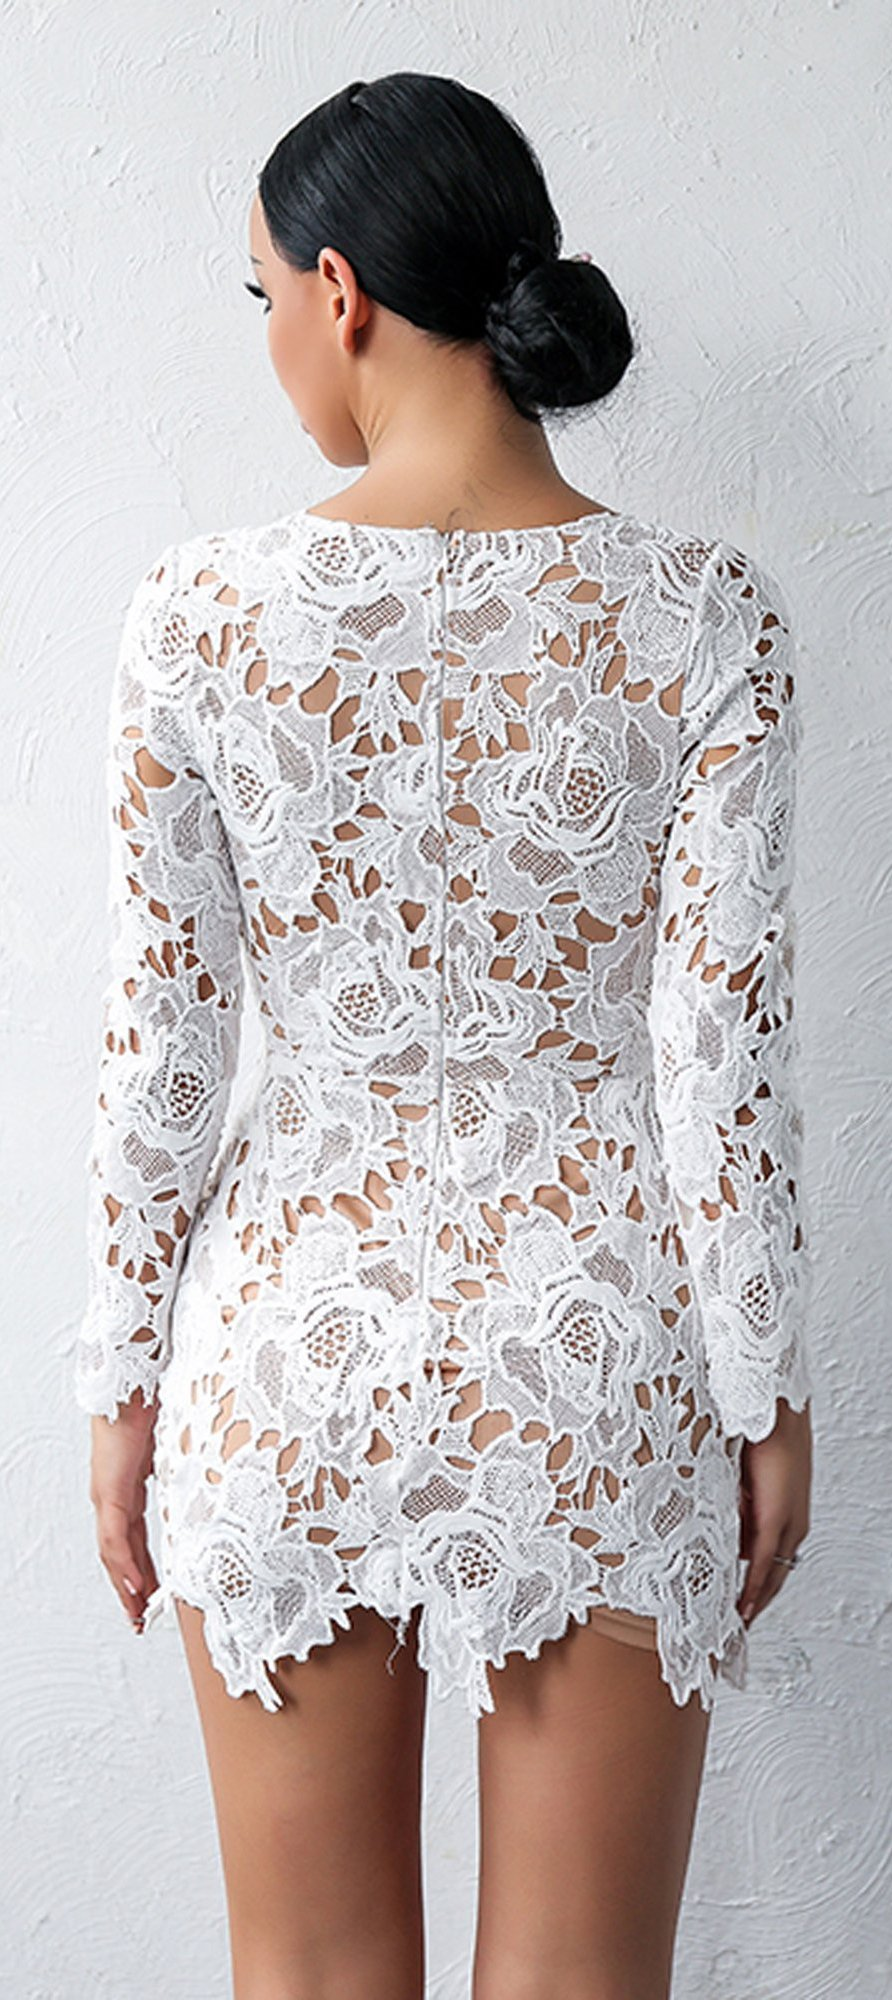 d1adfcf4a6 ... Cute Classy Summer Outfit Ideas for Teens - Elegant Beautiful White  Floral Mini Dresses Long Sleeve ...